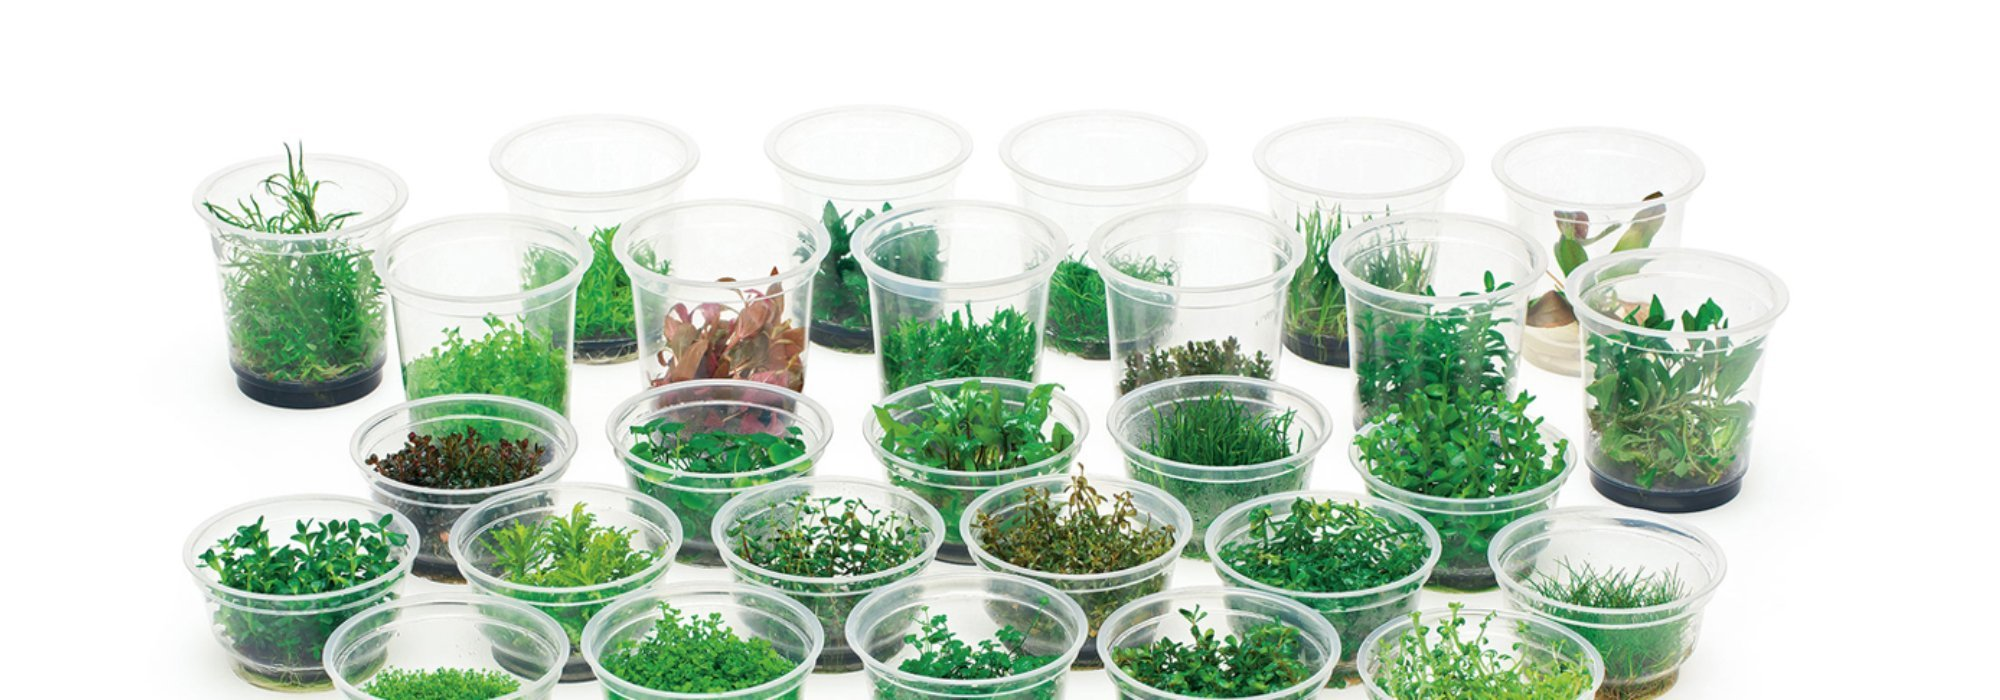 ADA TISSUE CULTURED AQUATIC PLANTS